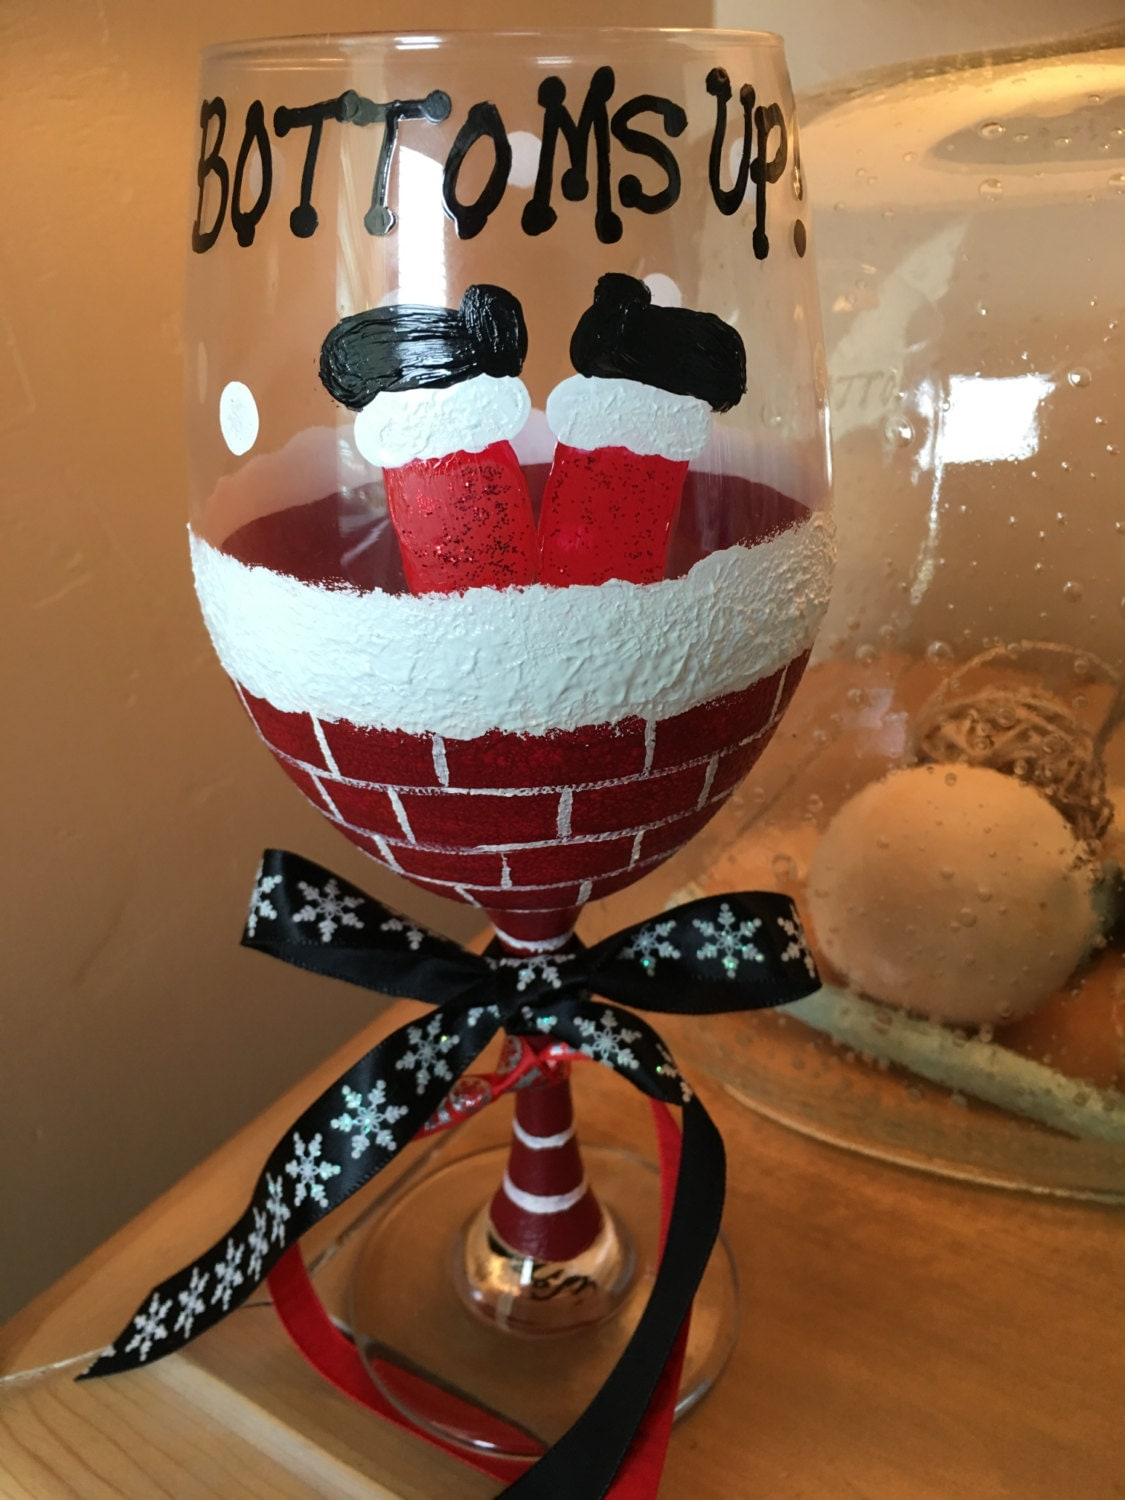 Bottoms up santa 20oz wine glass for Holiday wine glass crafts